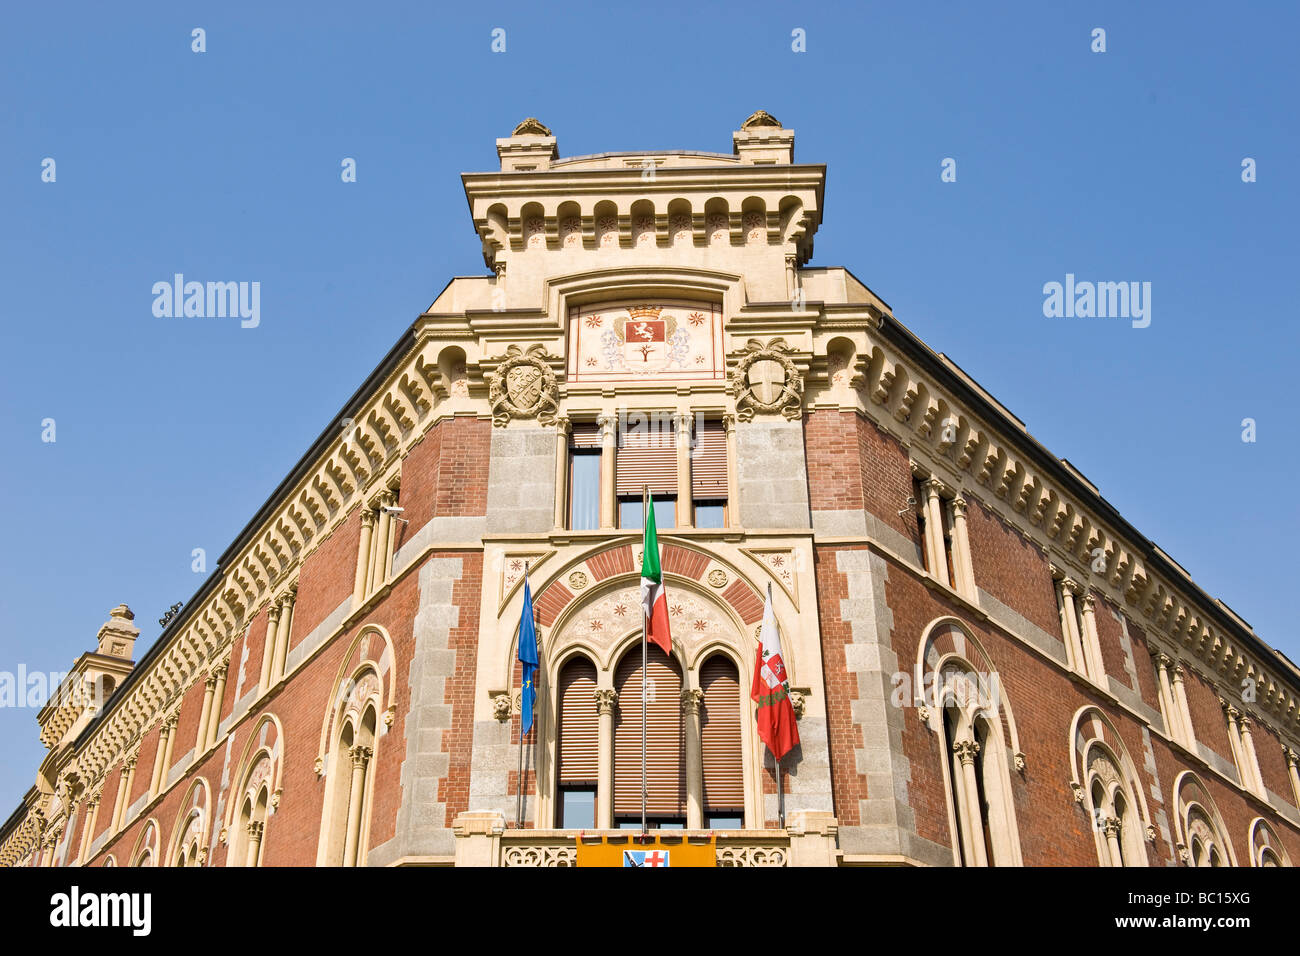 building of the municipality legnano province of milan - Stock Image